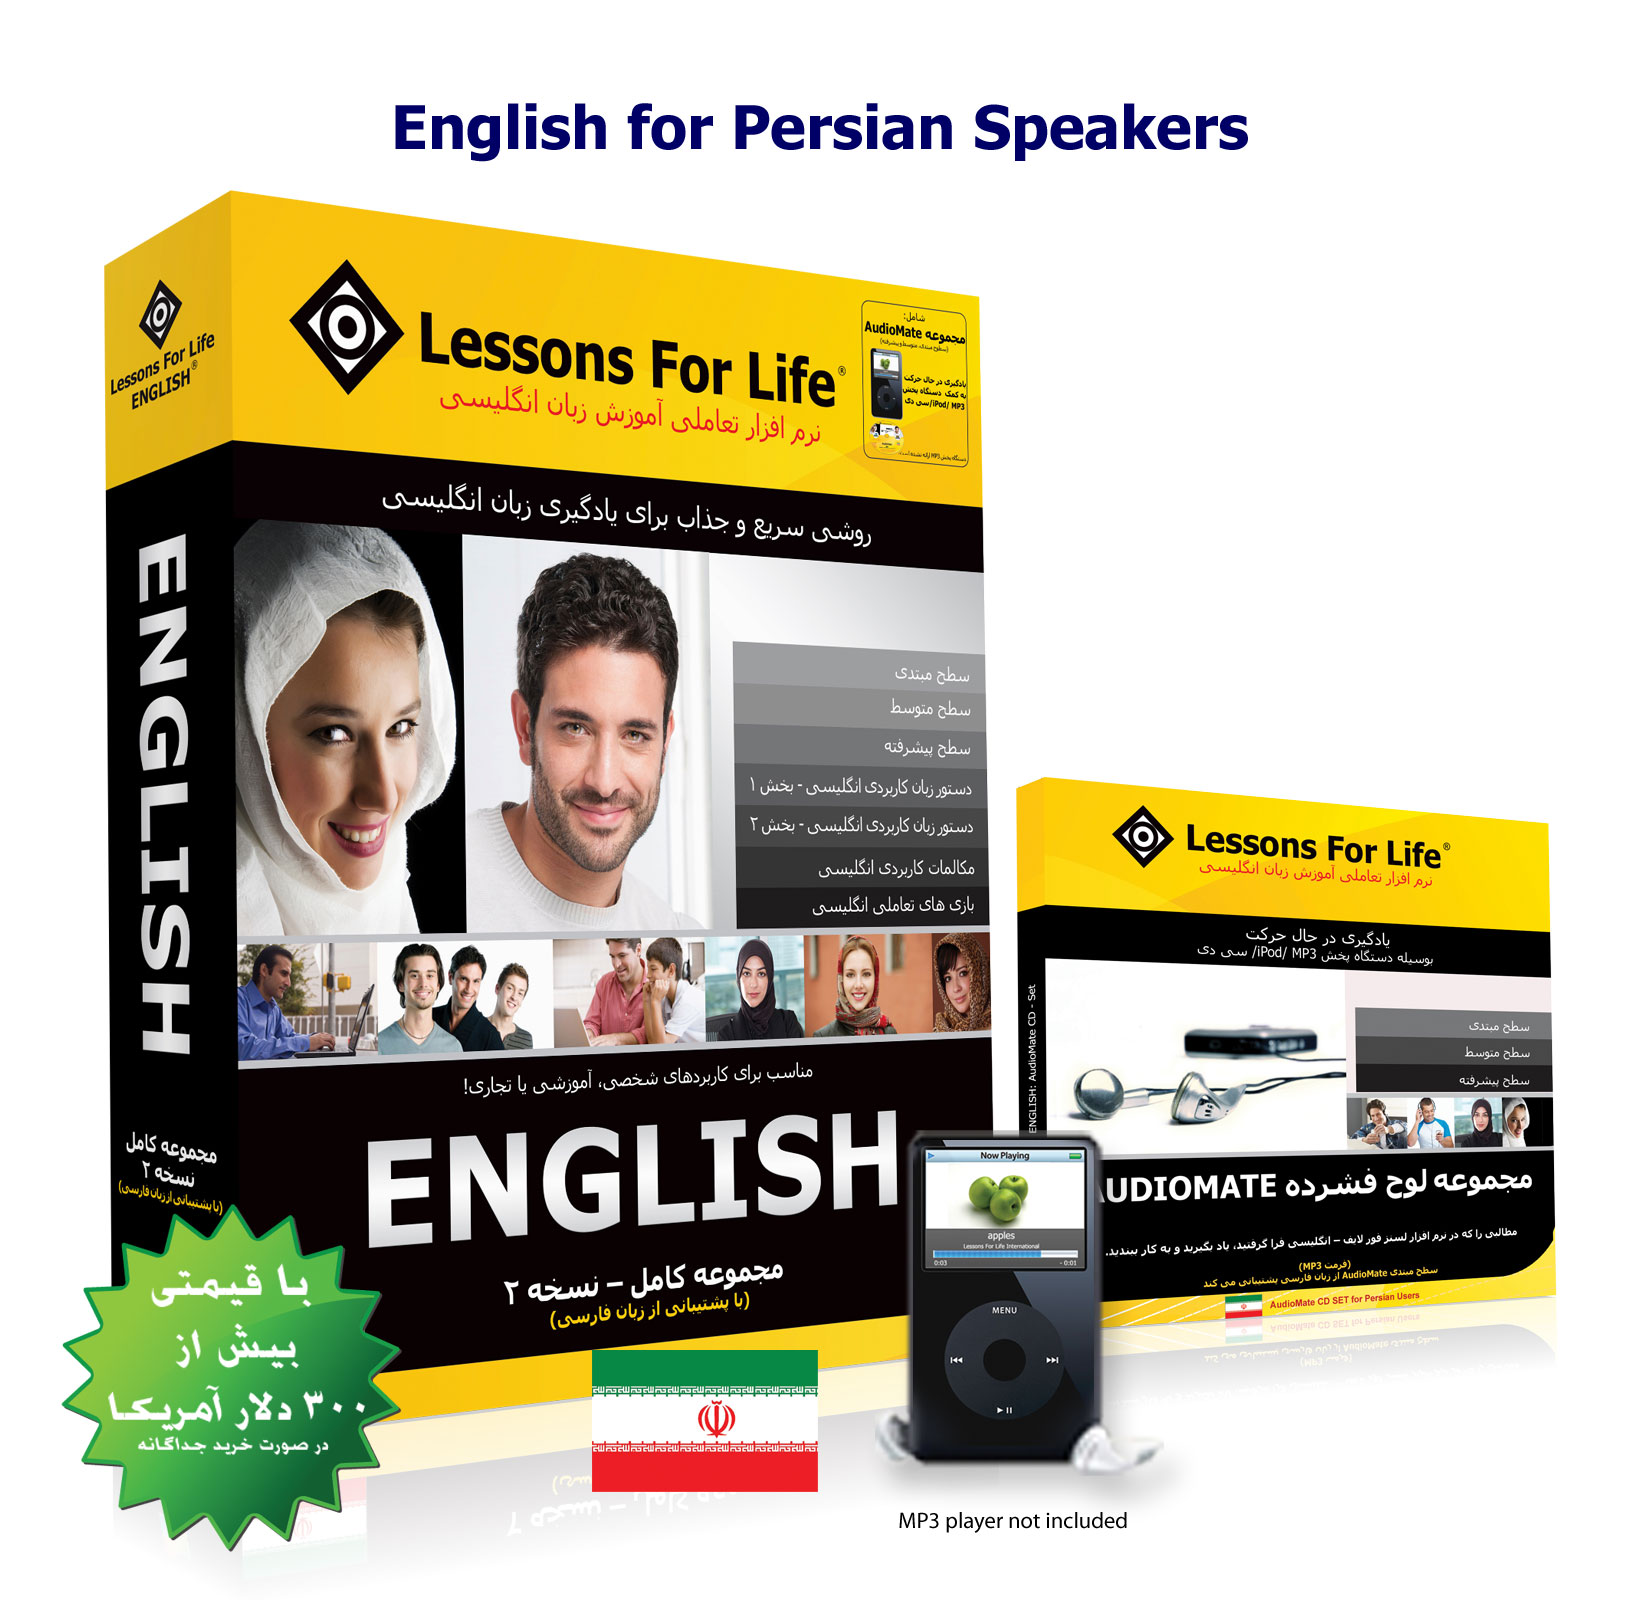 speakers of english The praxis study companion 5 step 1: learn about your test 1 learn about your test learn about the specific test you will be taking english to speakers of other languages (5361.